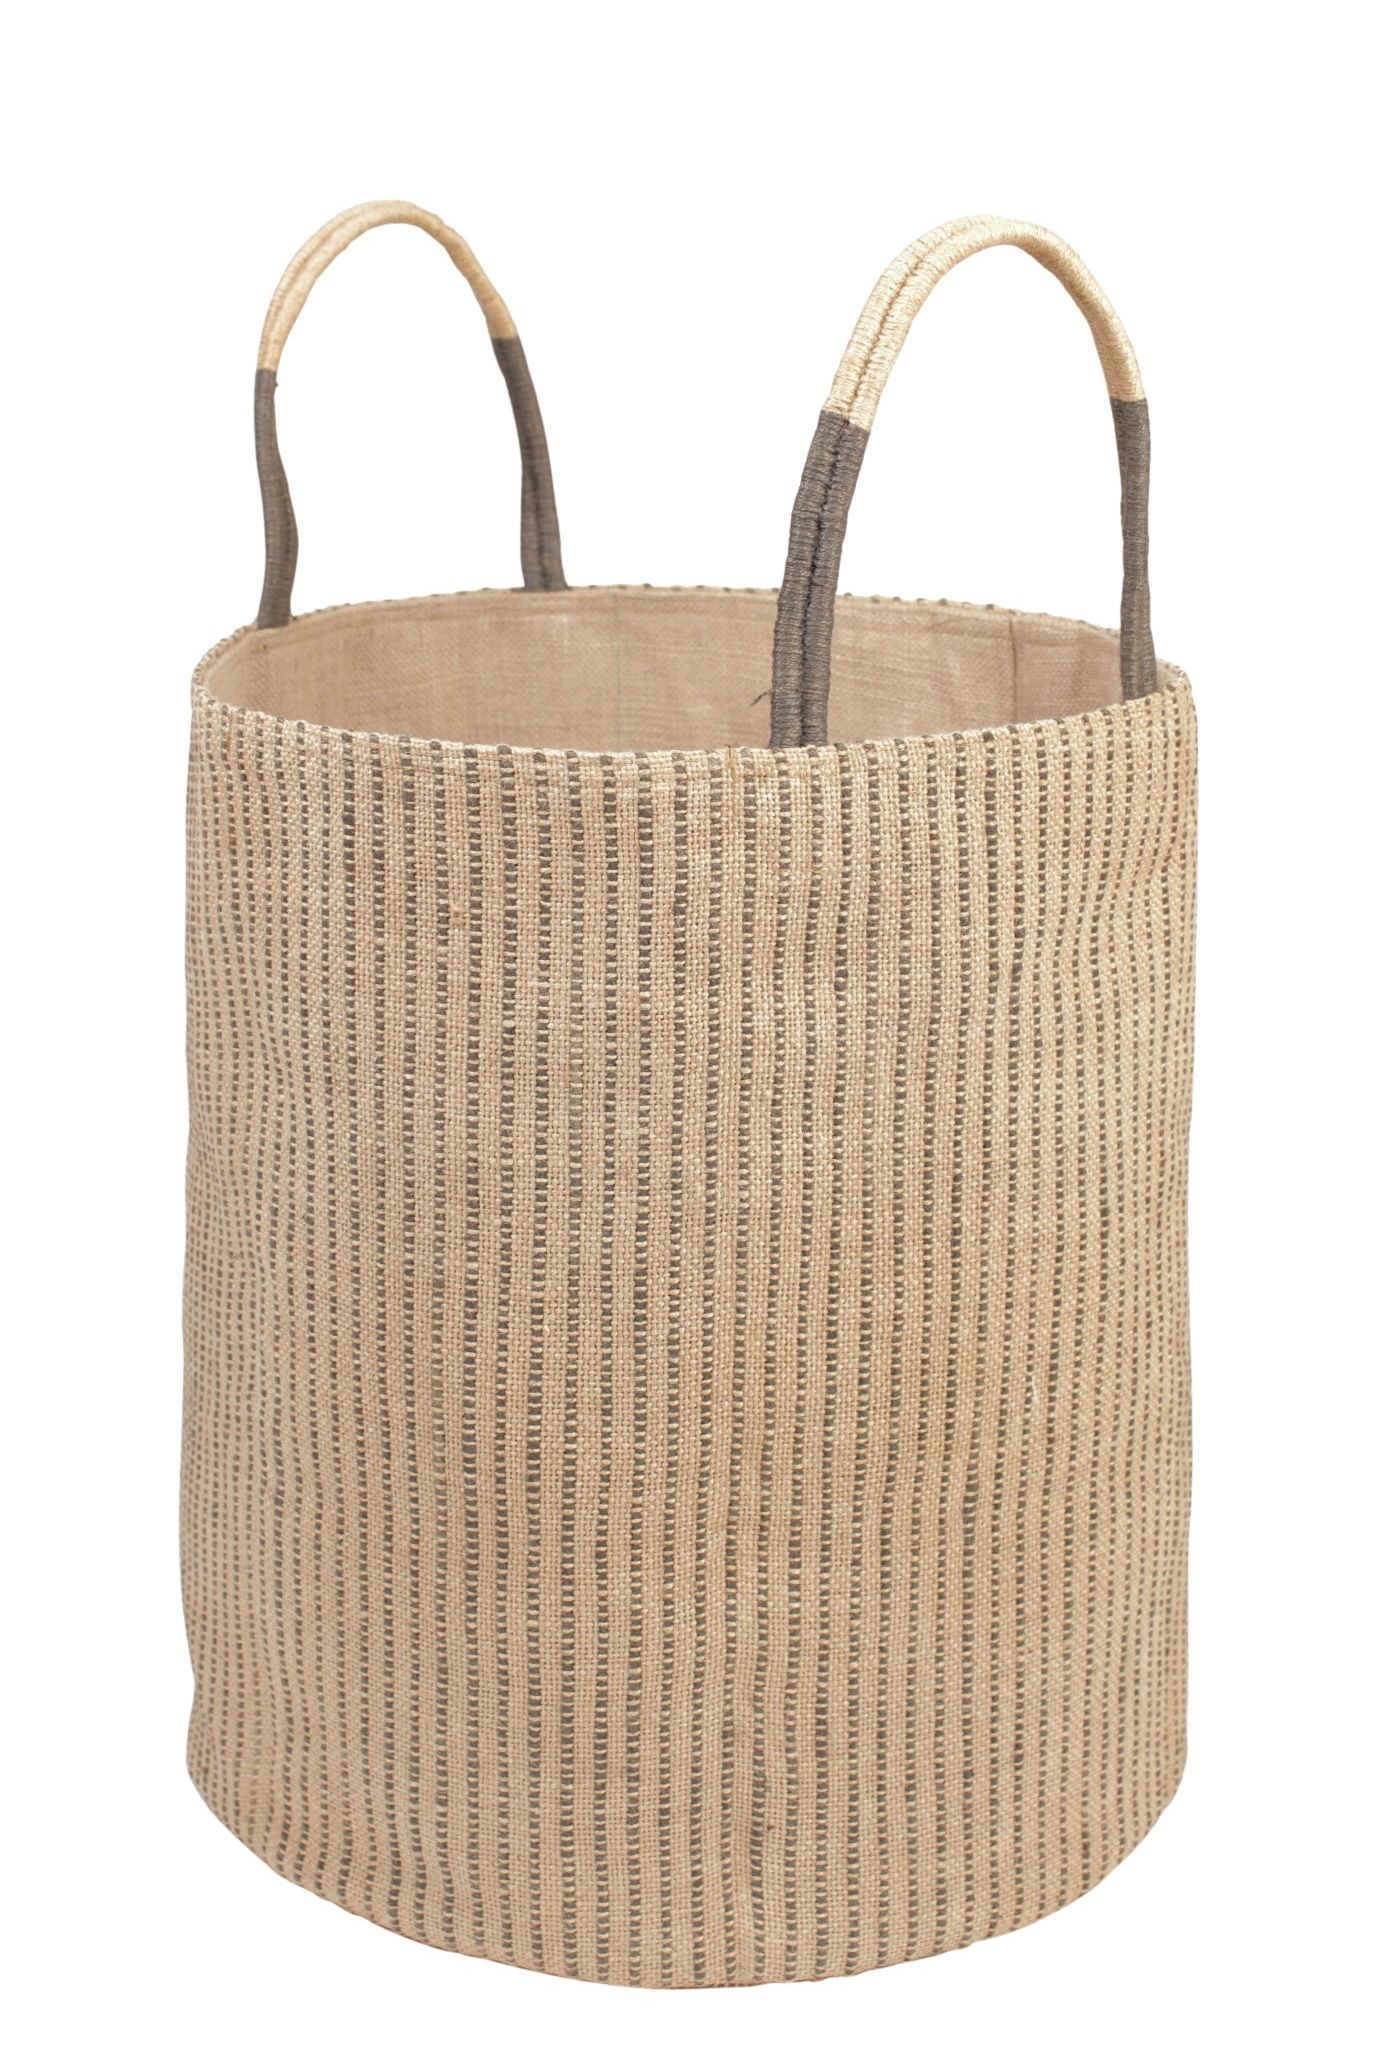 Our Loomed Basket